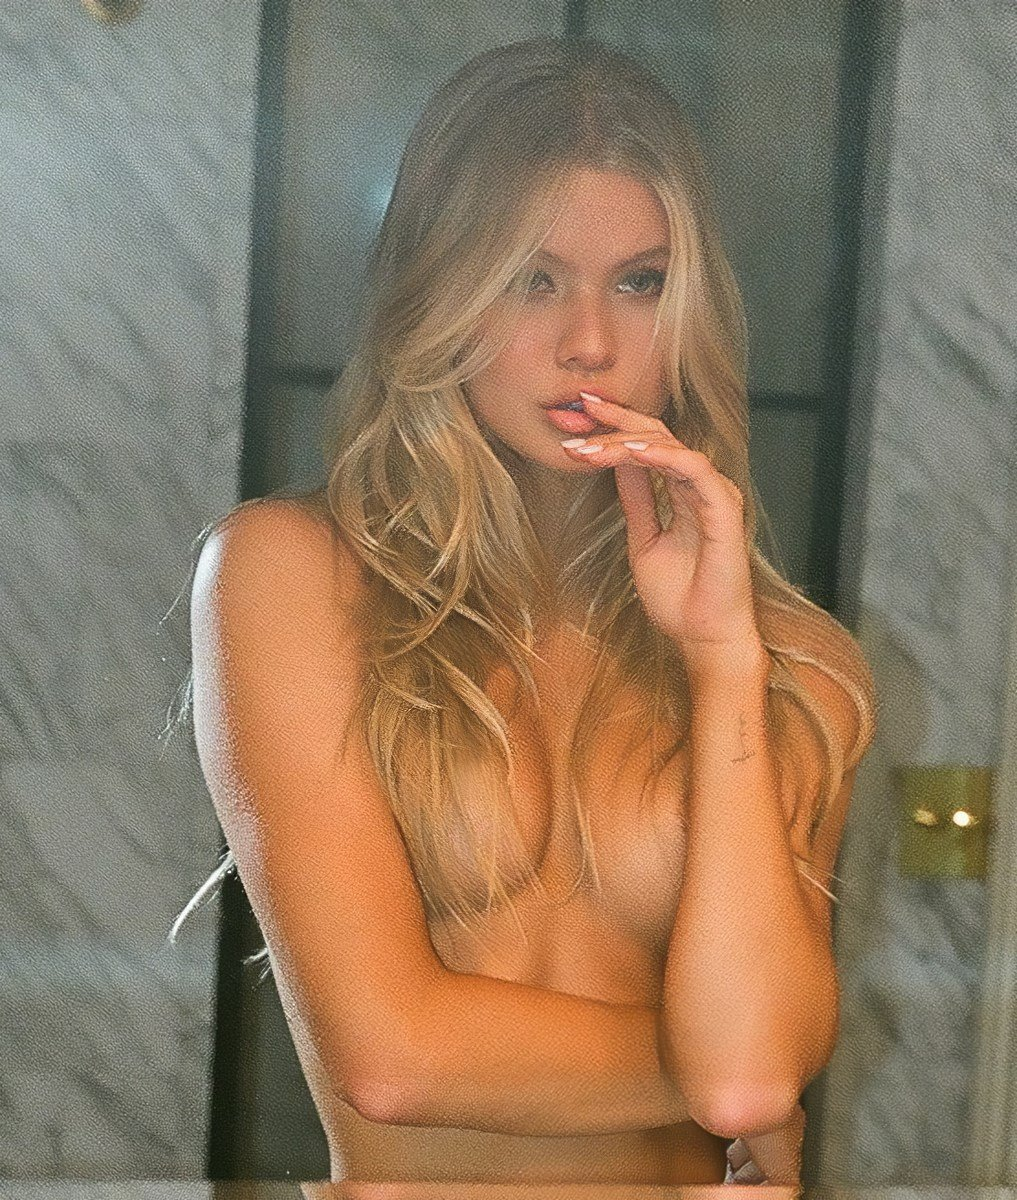 Josie Canseco Nude Compilation